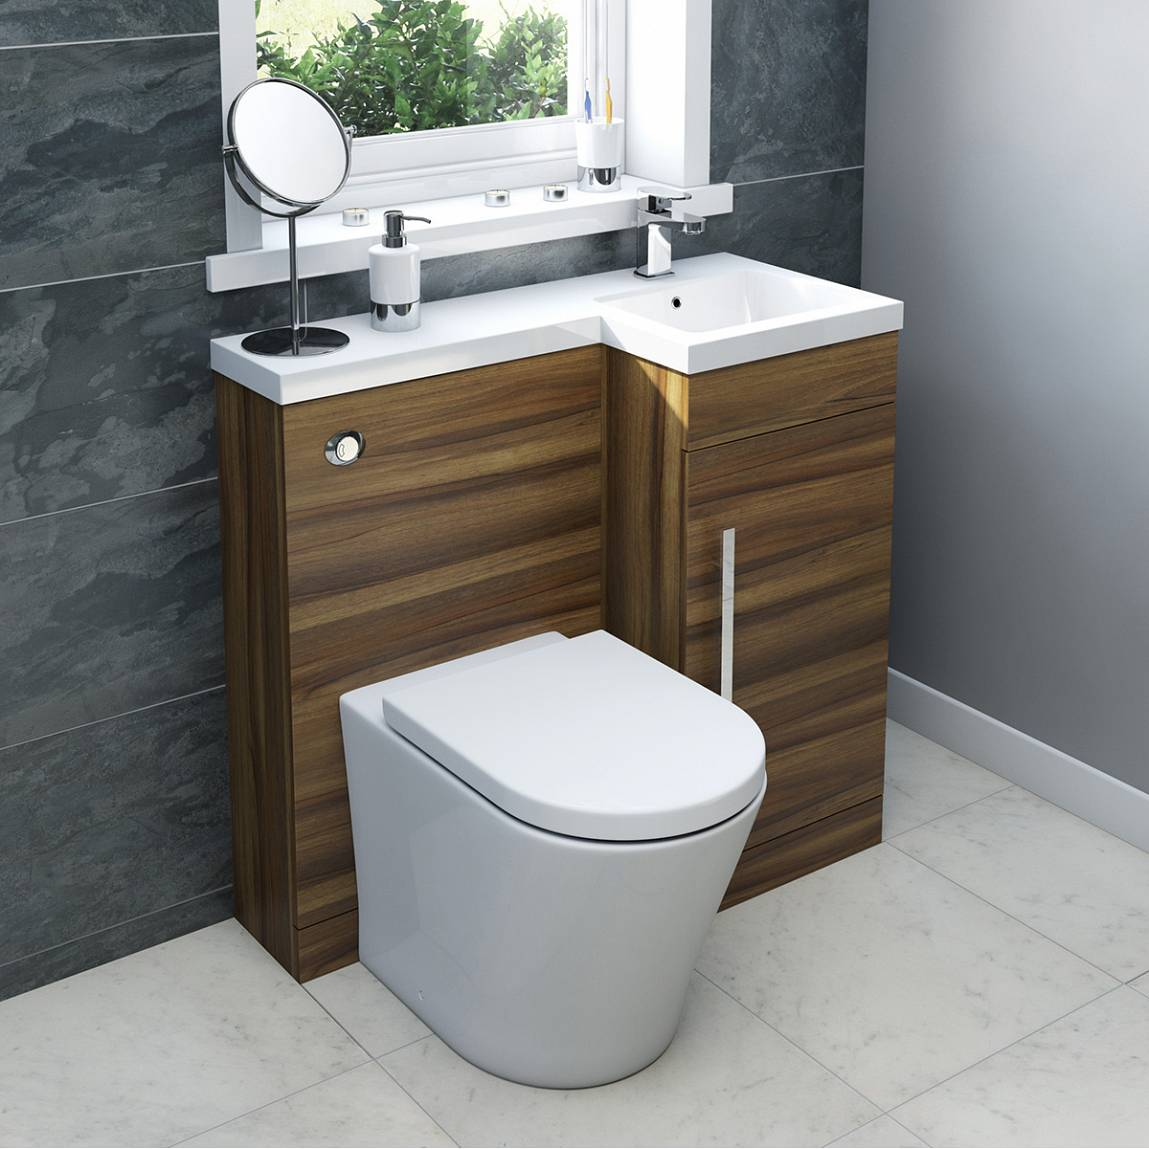 Stylish solutions for small bathrooms for Small bathroom solutions